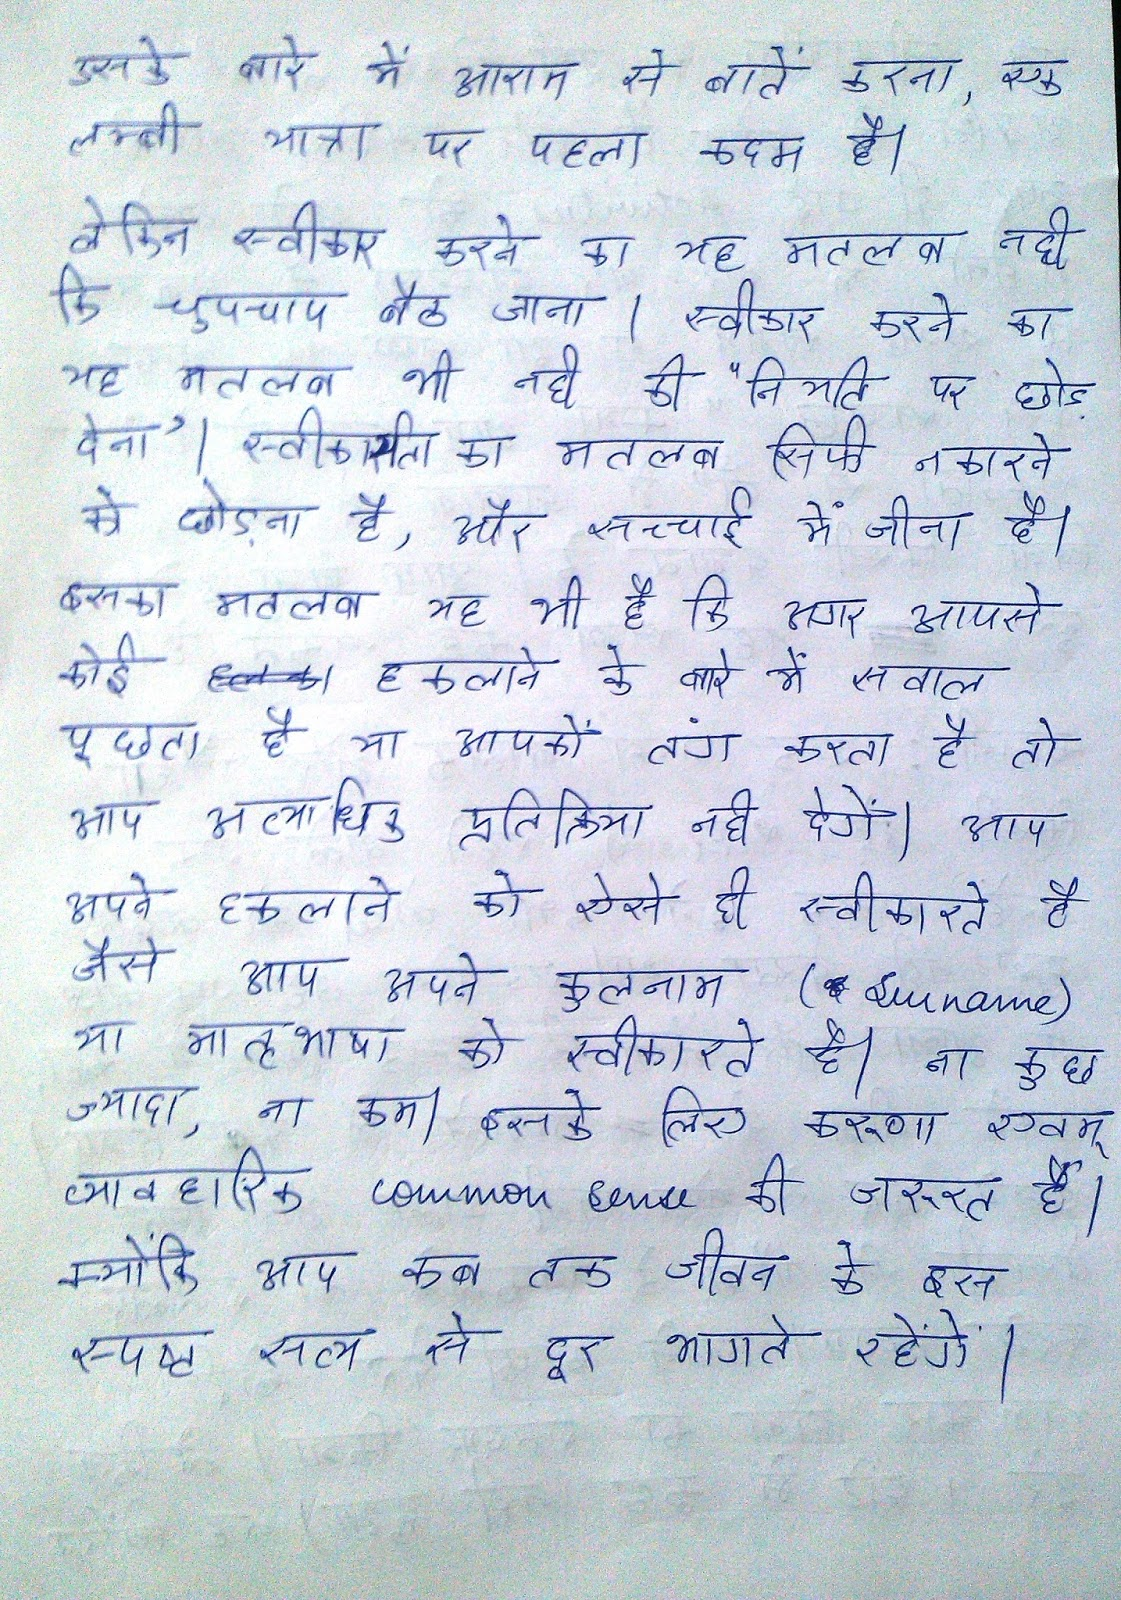 I Hope That This Would Be Very Helpful For Those Who Understand Hindi More Accurately If There Are Some Errors Please Comment Sorry My Handwriting